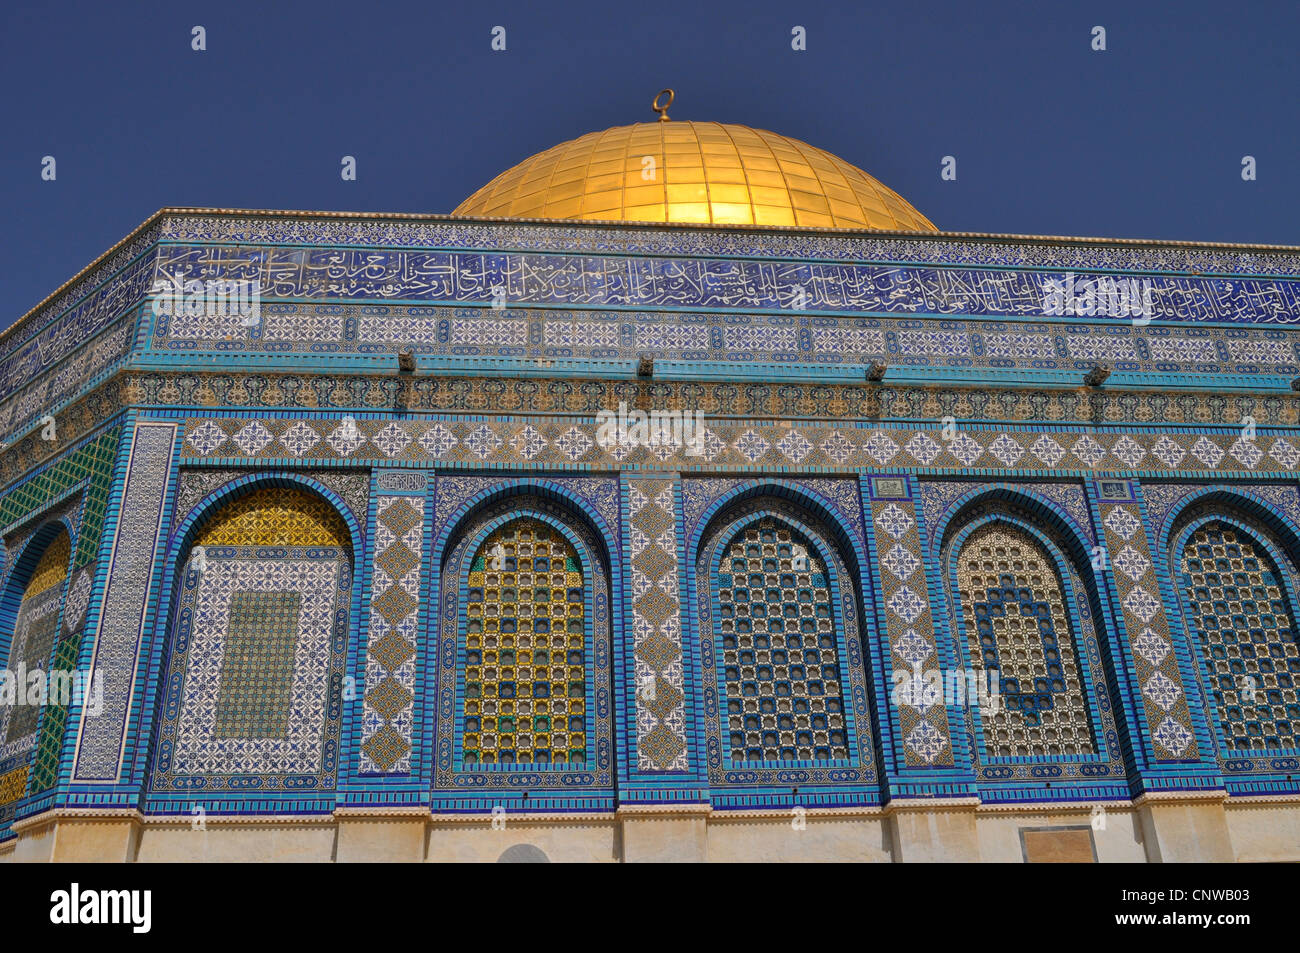 Temple Mount, Dome of the Rock, Al Aqsa Mosque site, East Jerusalem, Old City, disputed holy site f Muslims, Christians - Stock Image